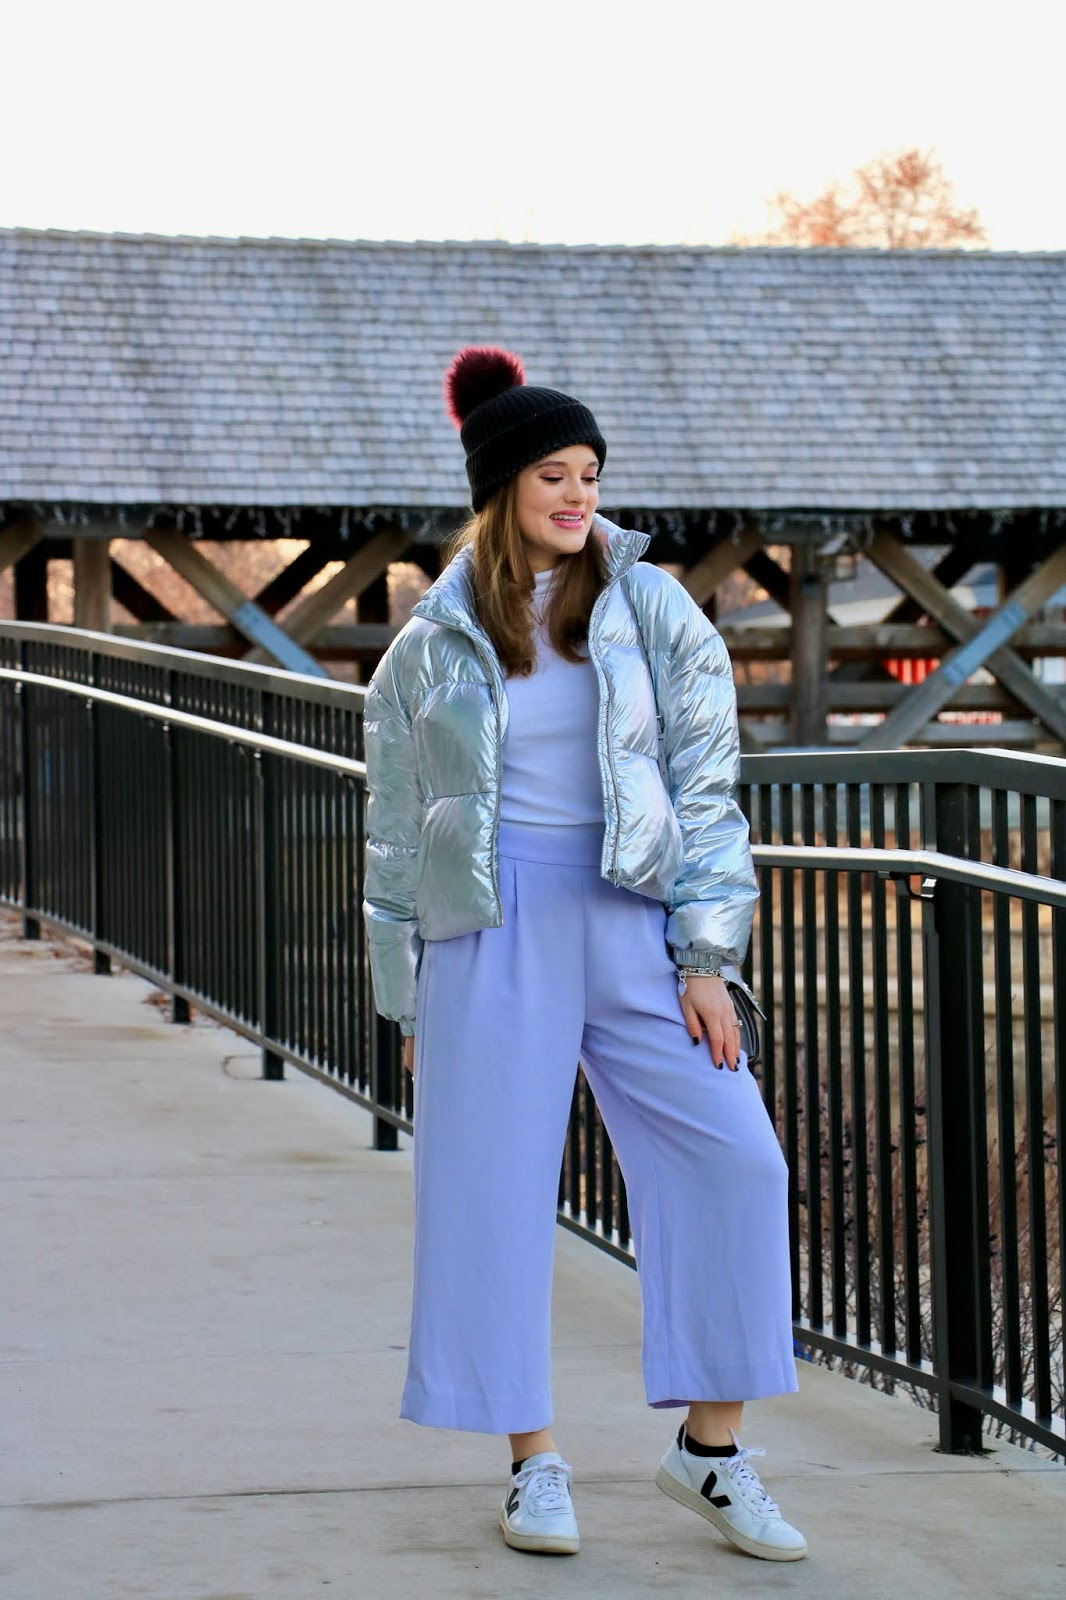 Nyc fashion blogger Kathleen Harper wearing a lavender pants outfit.